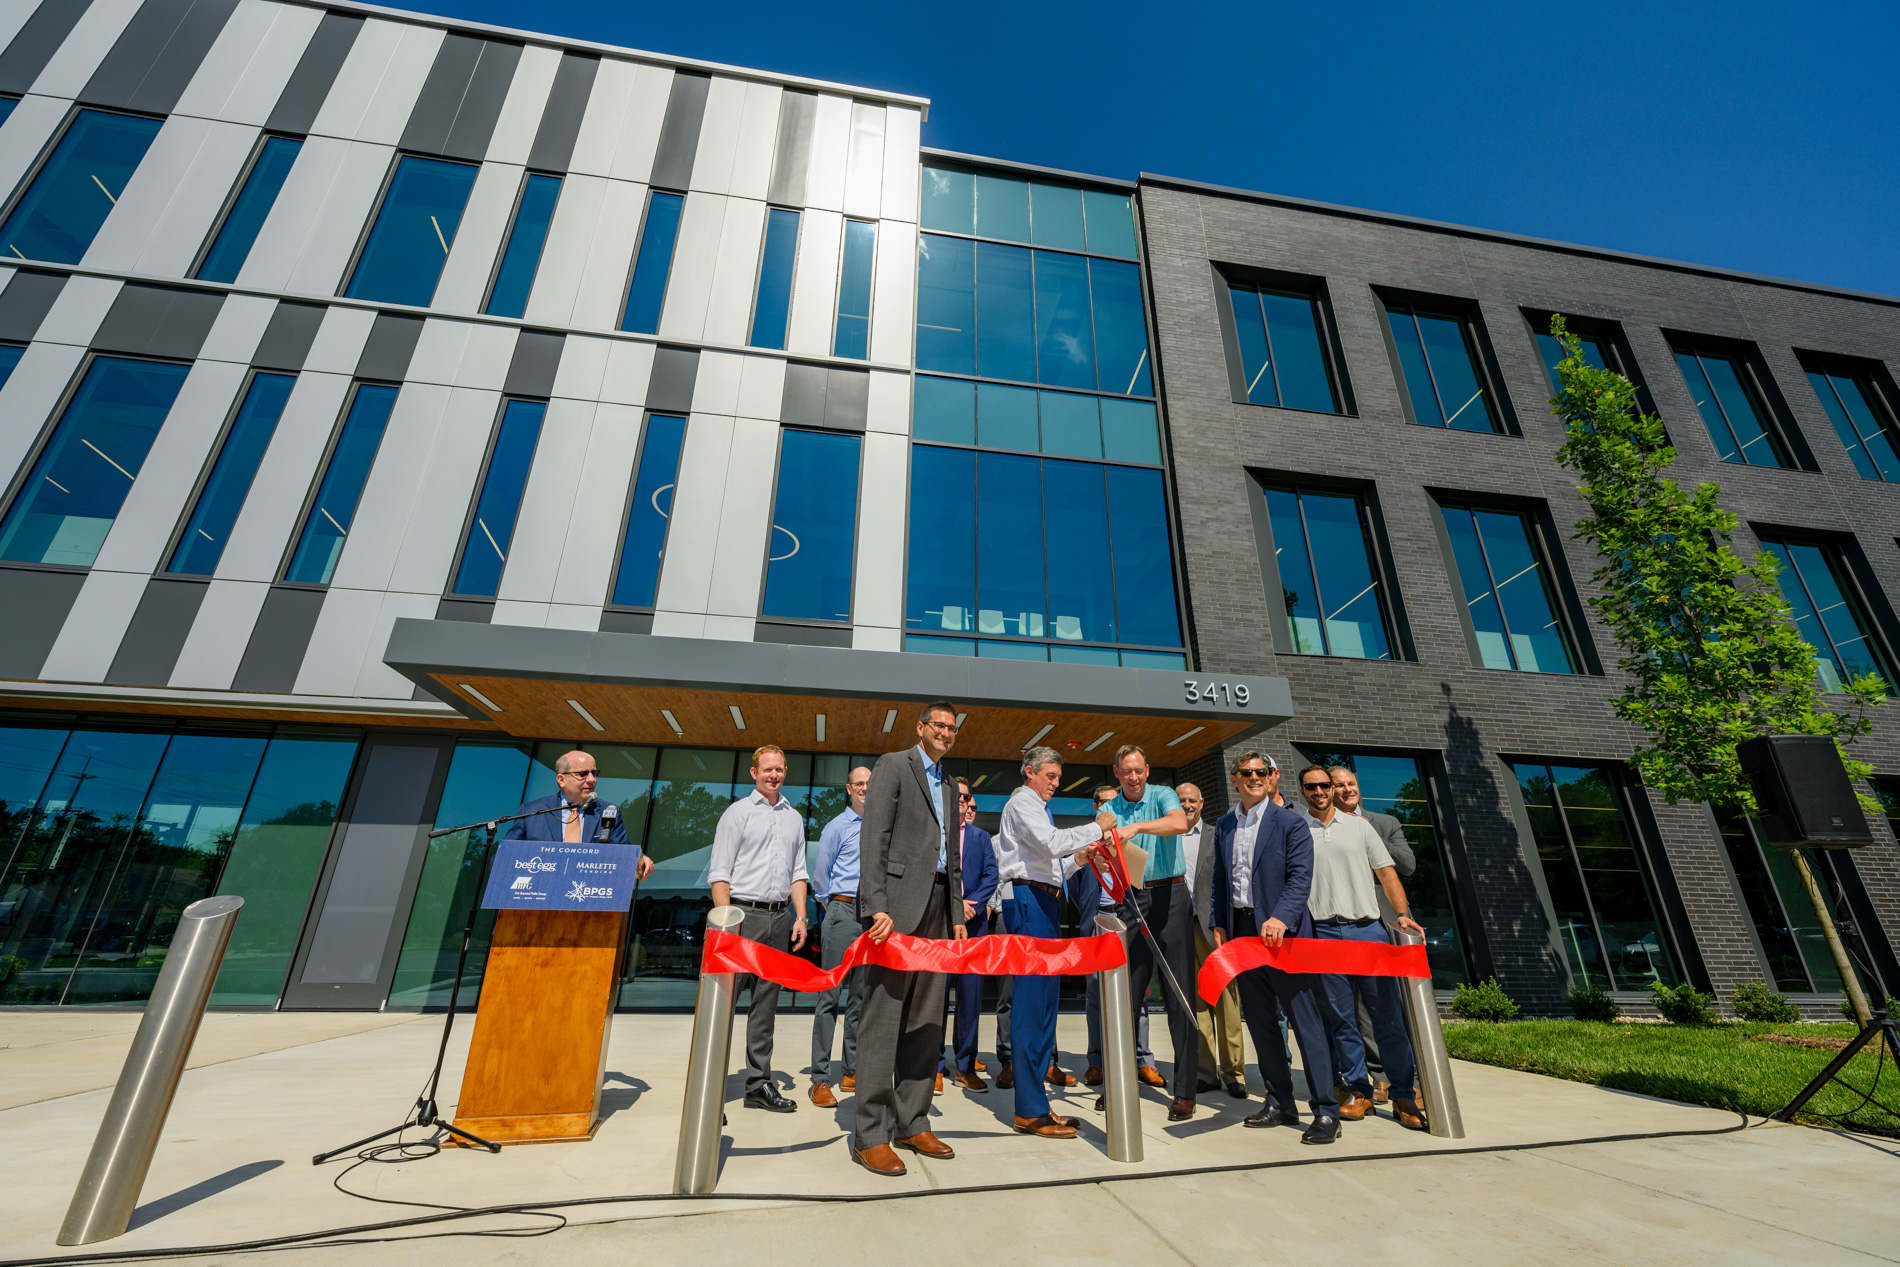 BPGS, BPG, and public officials cut ribbon for Marlette funding new office building